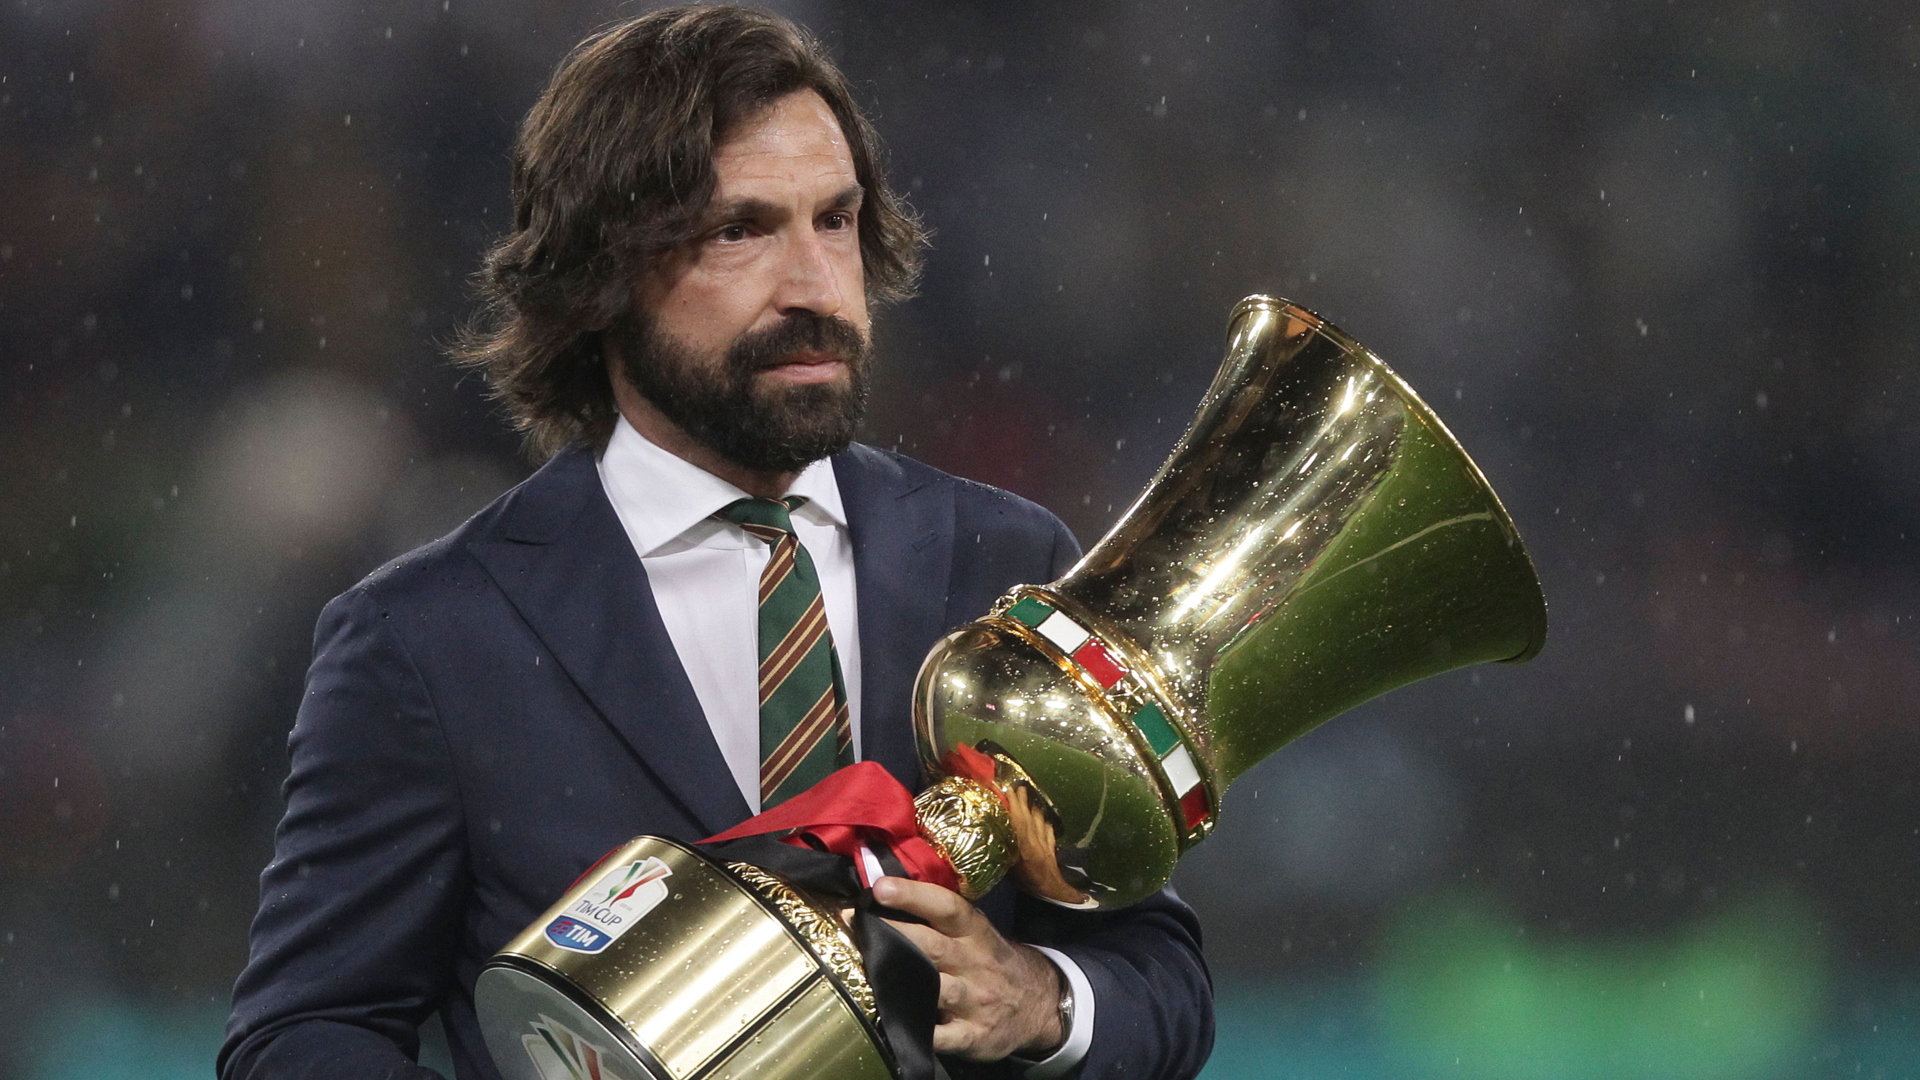 Pirlo can become a greater coach than Zidane, says Juventus legend Del Piero